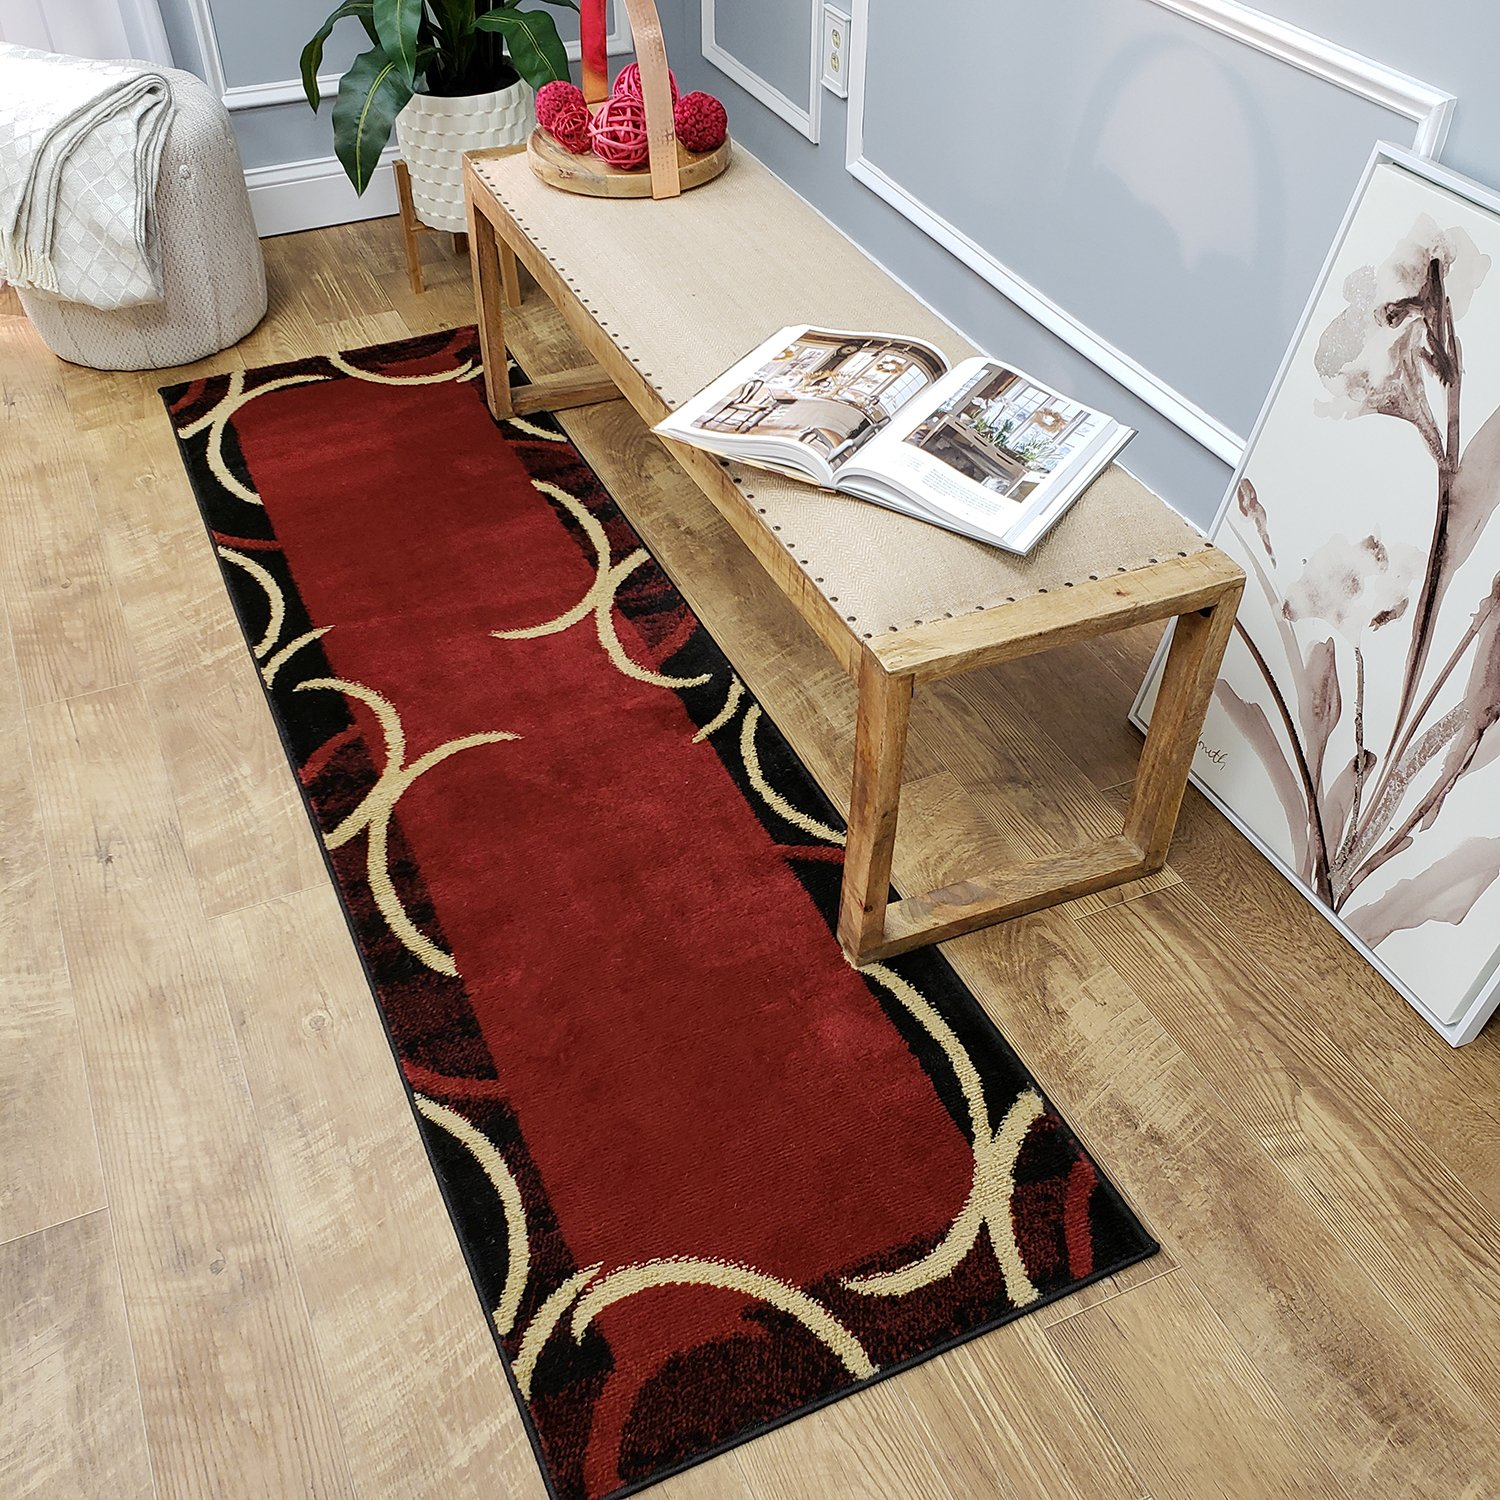 Maxy Home Pasha Contemporary Arches Multicolor 1 ft. 11 in. x 6 ft. 11 in. Rug Runner